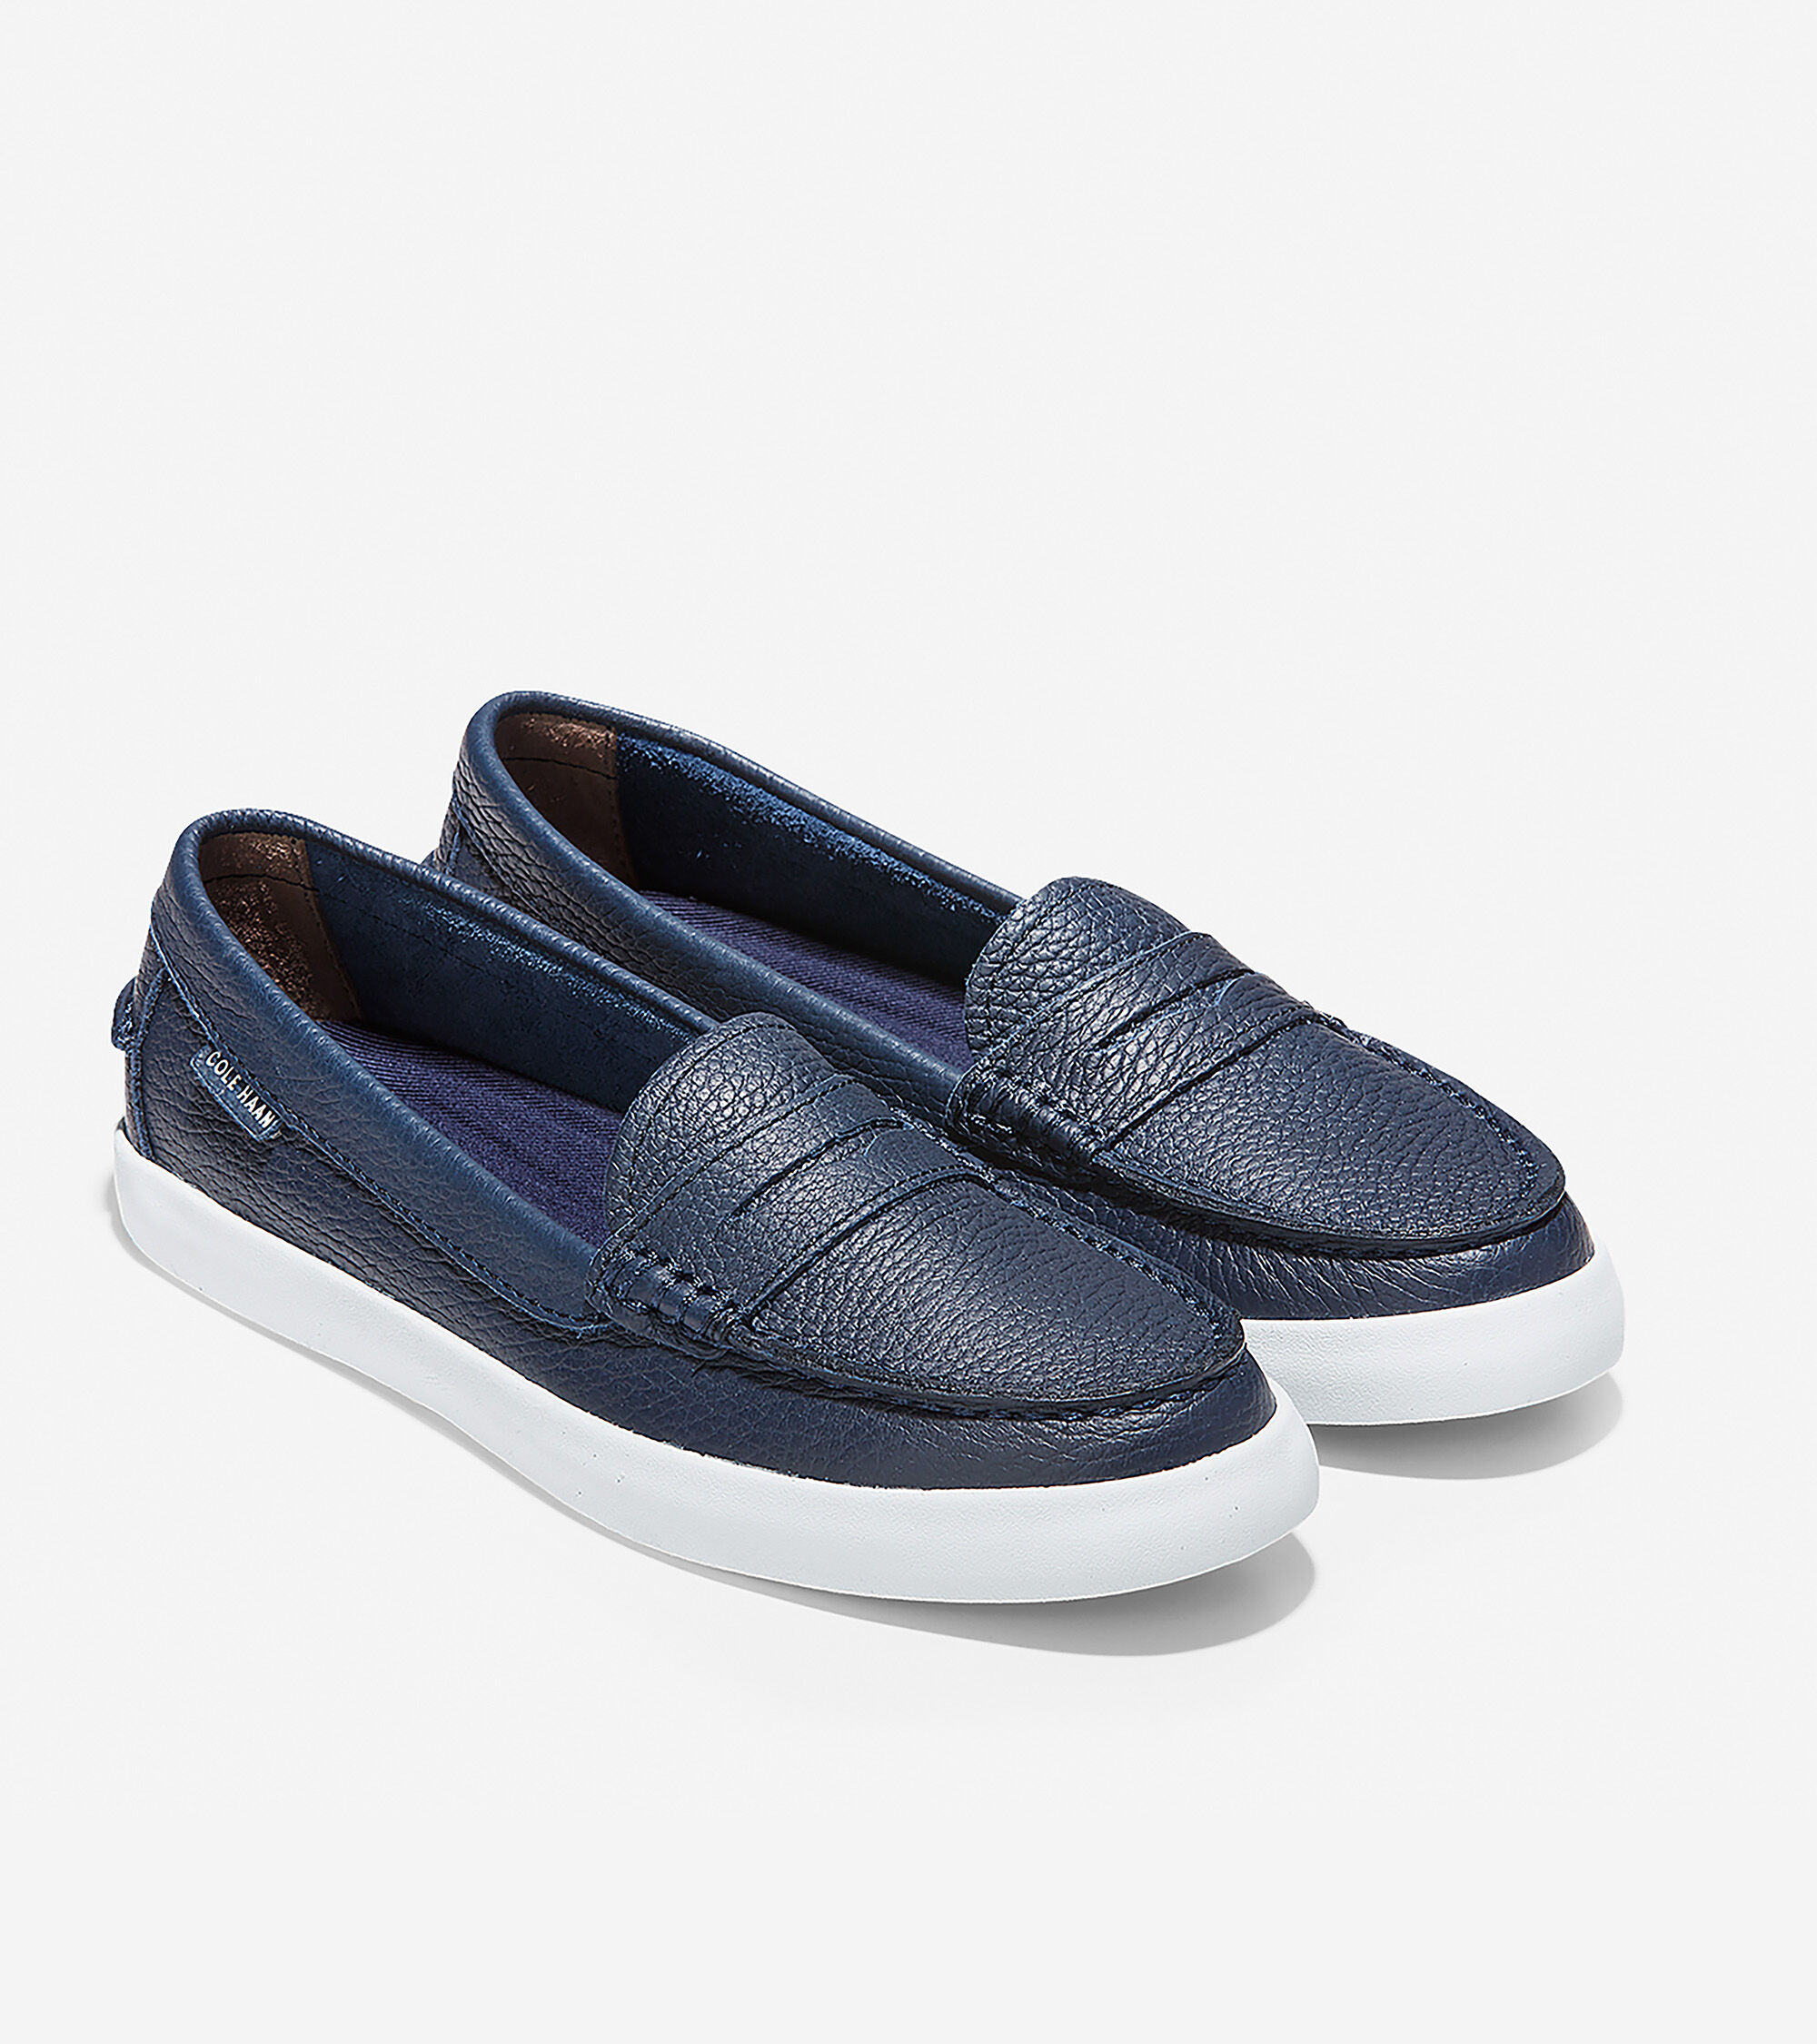 Nantucket Loafer in Navy Leather